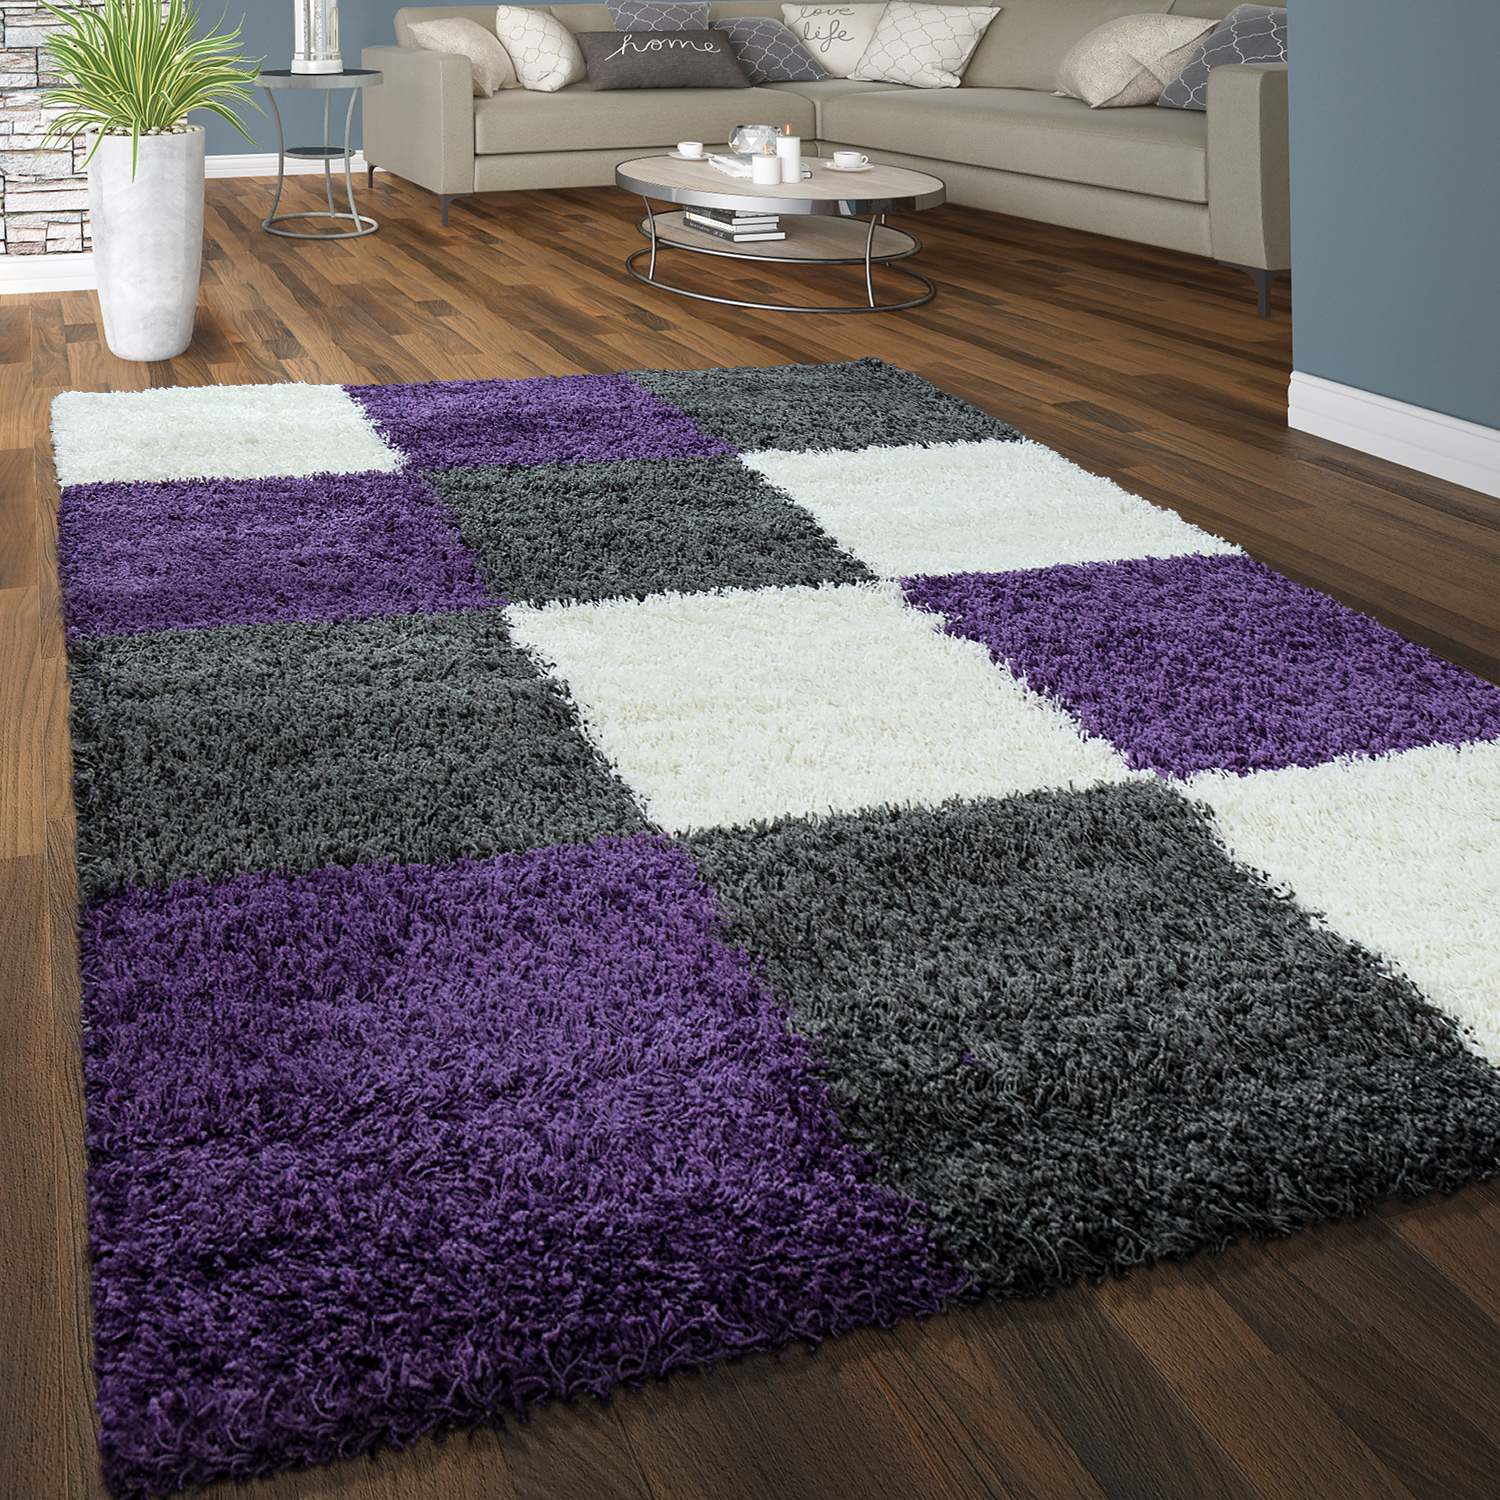 tapis shaggy poils hauts confortable doux poils longs carreaux blanc gris lilas tapis tapis. Black Bedroom Furniture Sets. Home Design Ideas